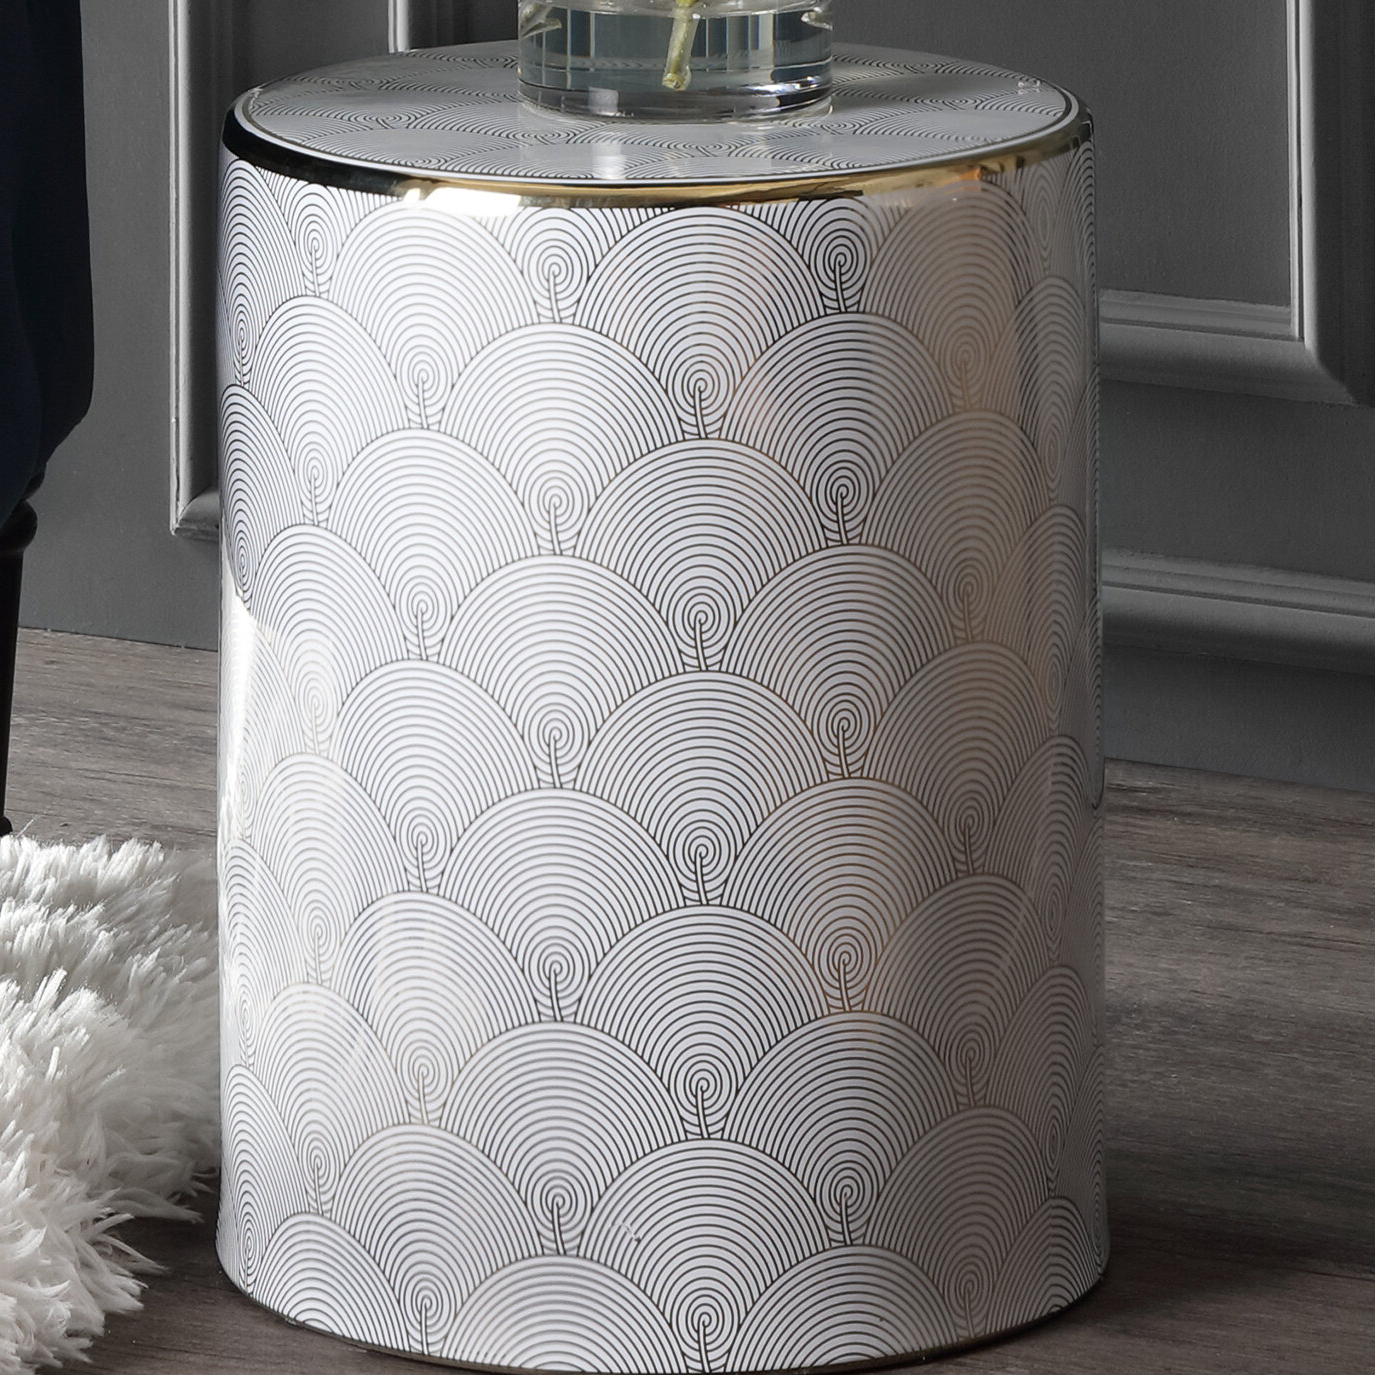 2020 Vandergriff Fish Scale Modern Ceramic Garden Stool Inside Svendsen Ceramic Garden Stools (View 8 of 30)